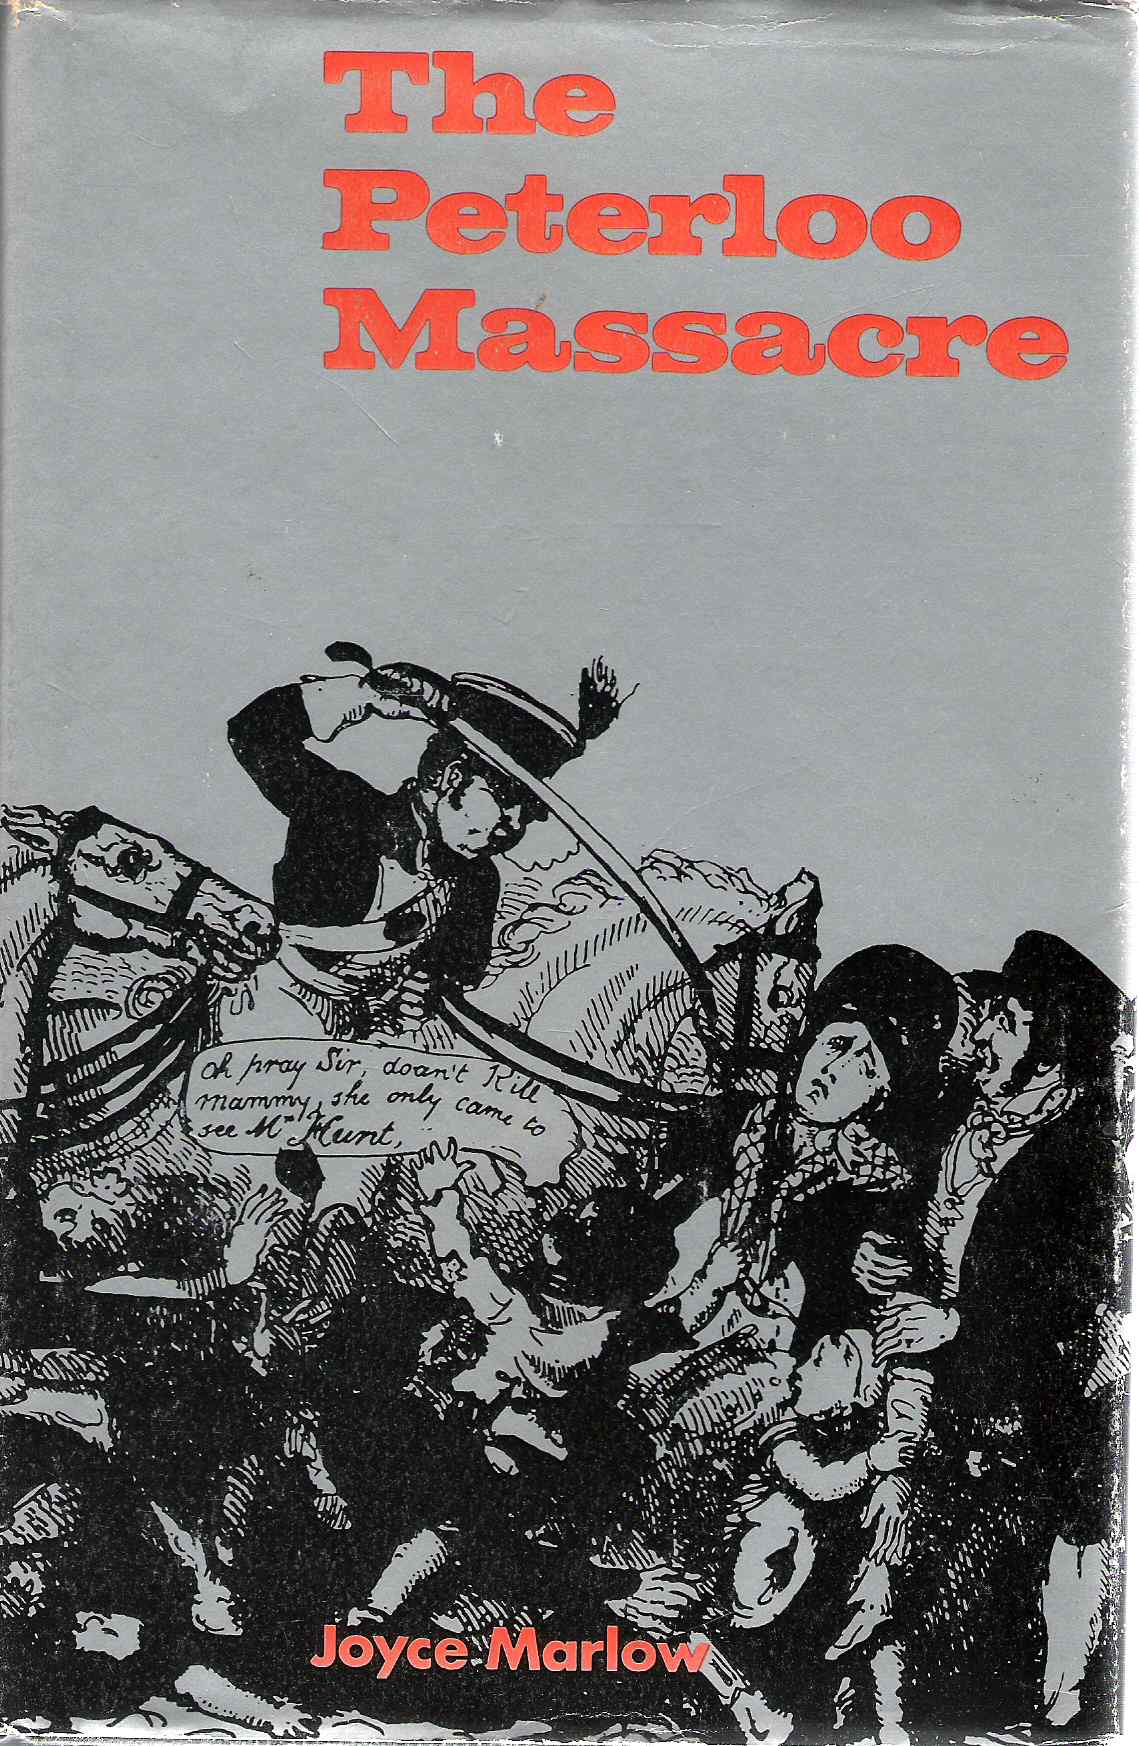 Picture of the Dust Jacket for The Peterloo Massacre